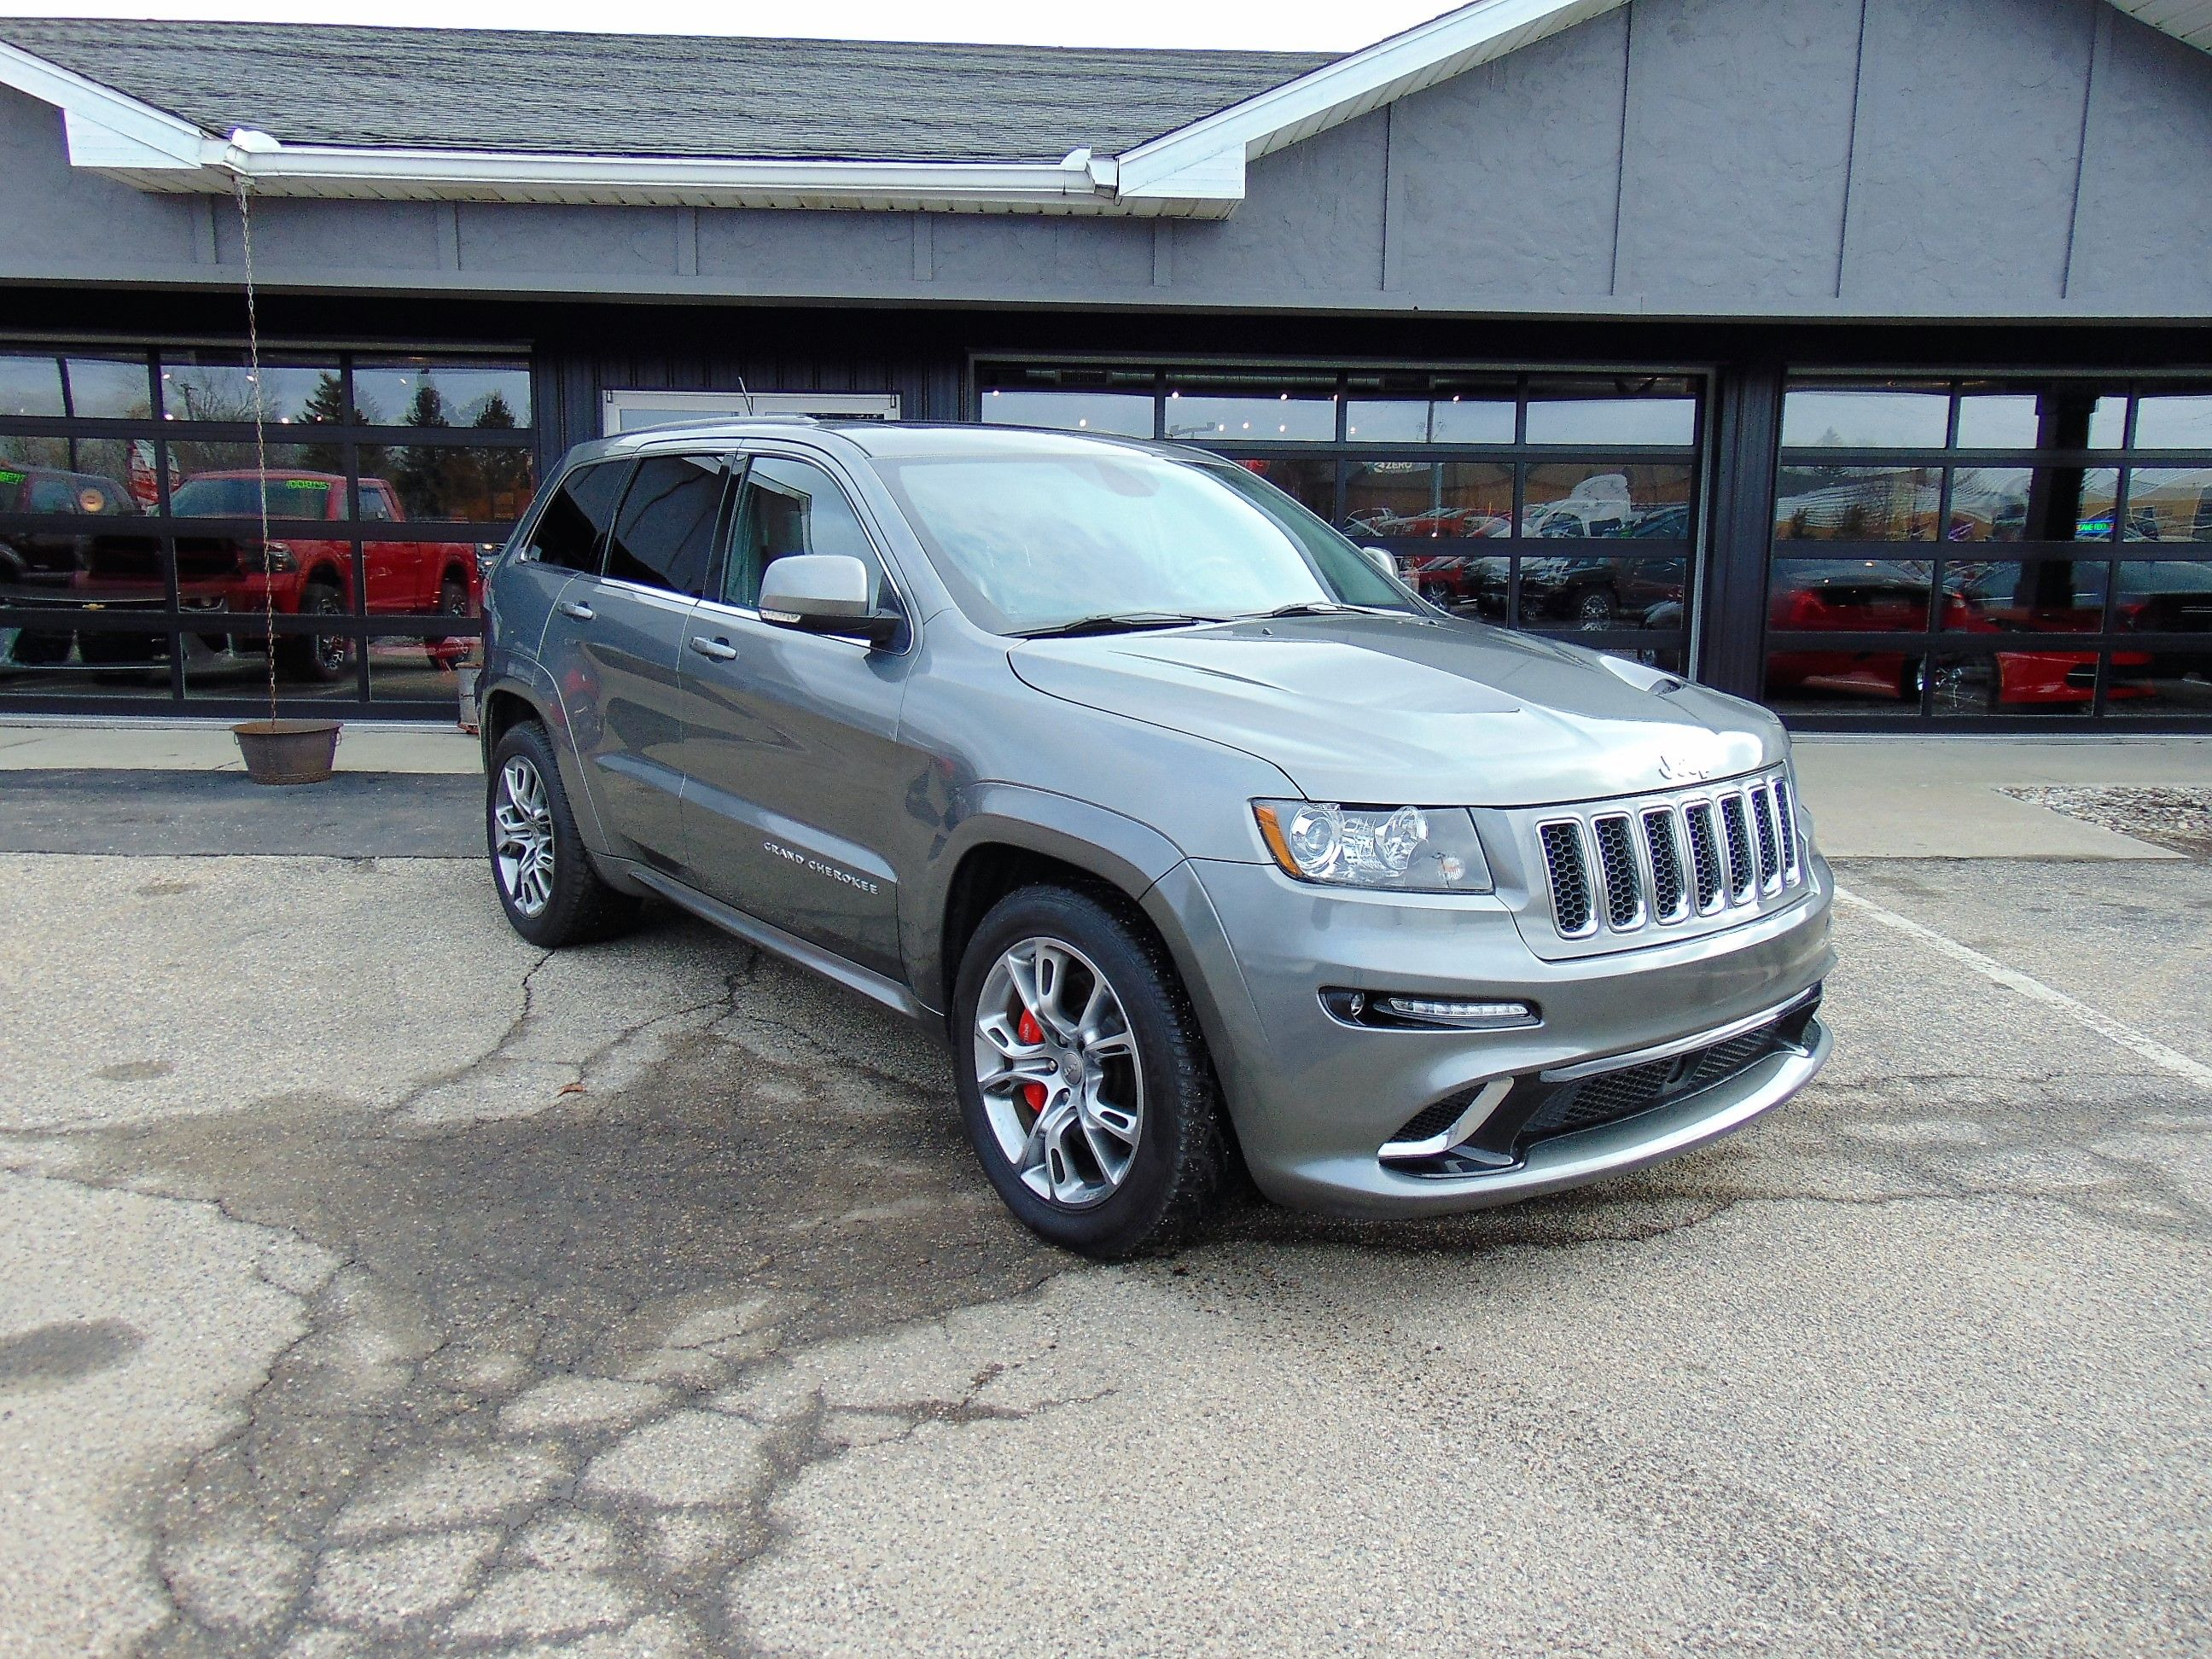 inventory nicolas for sale st quebec grand cherokee en jeep used in